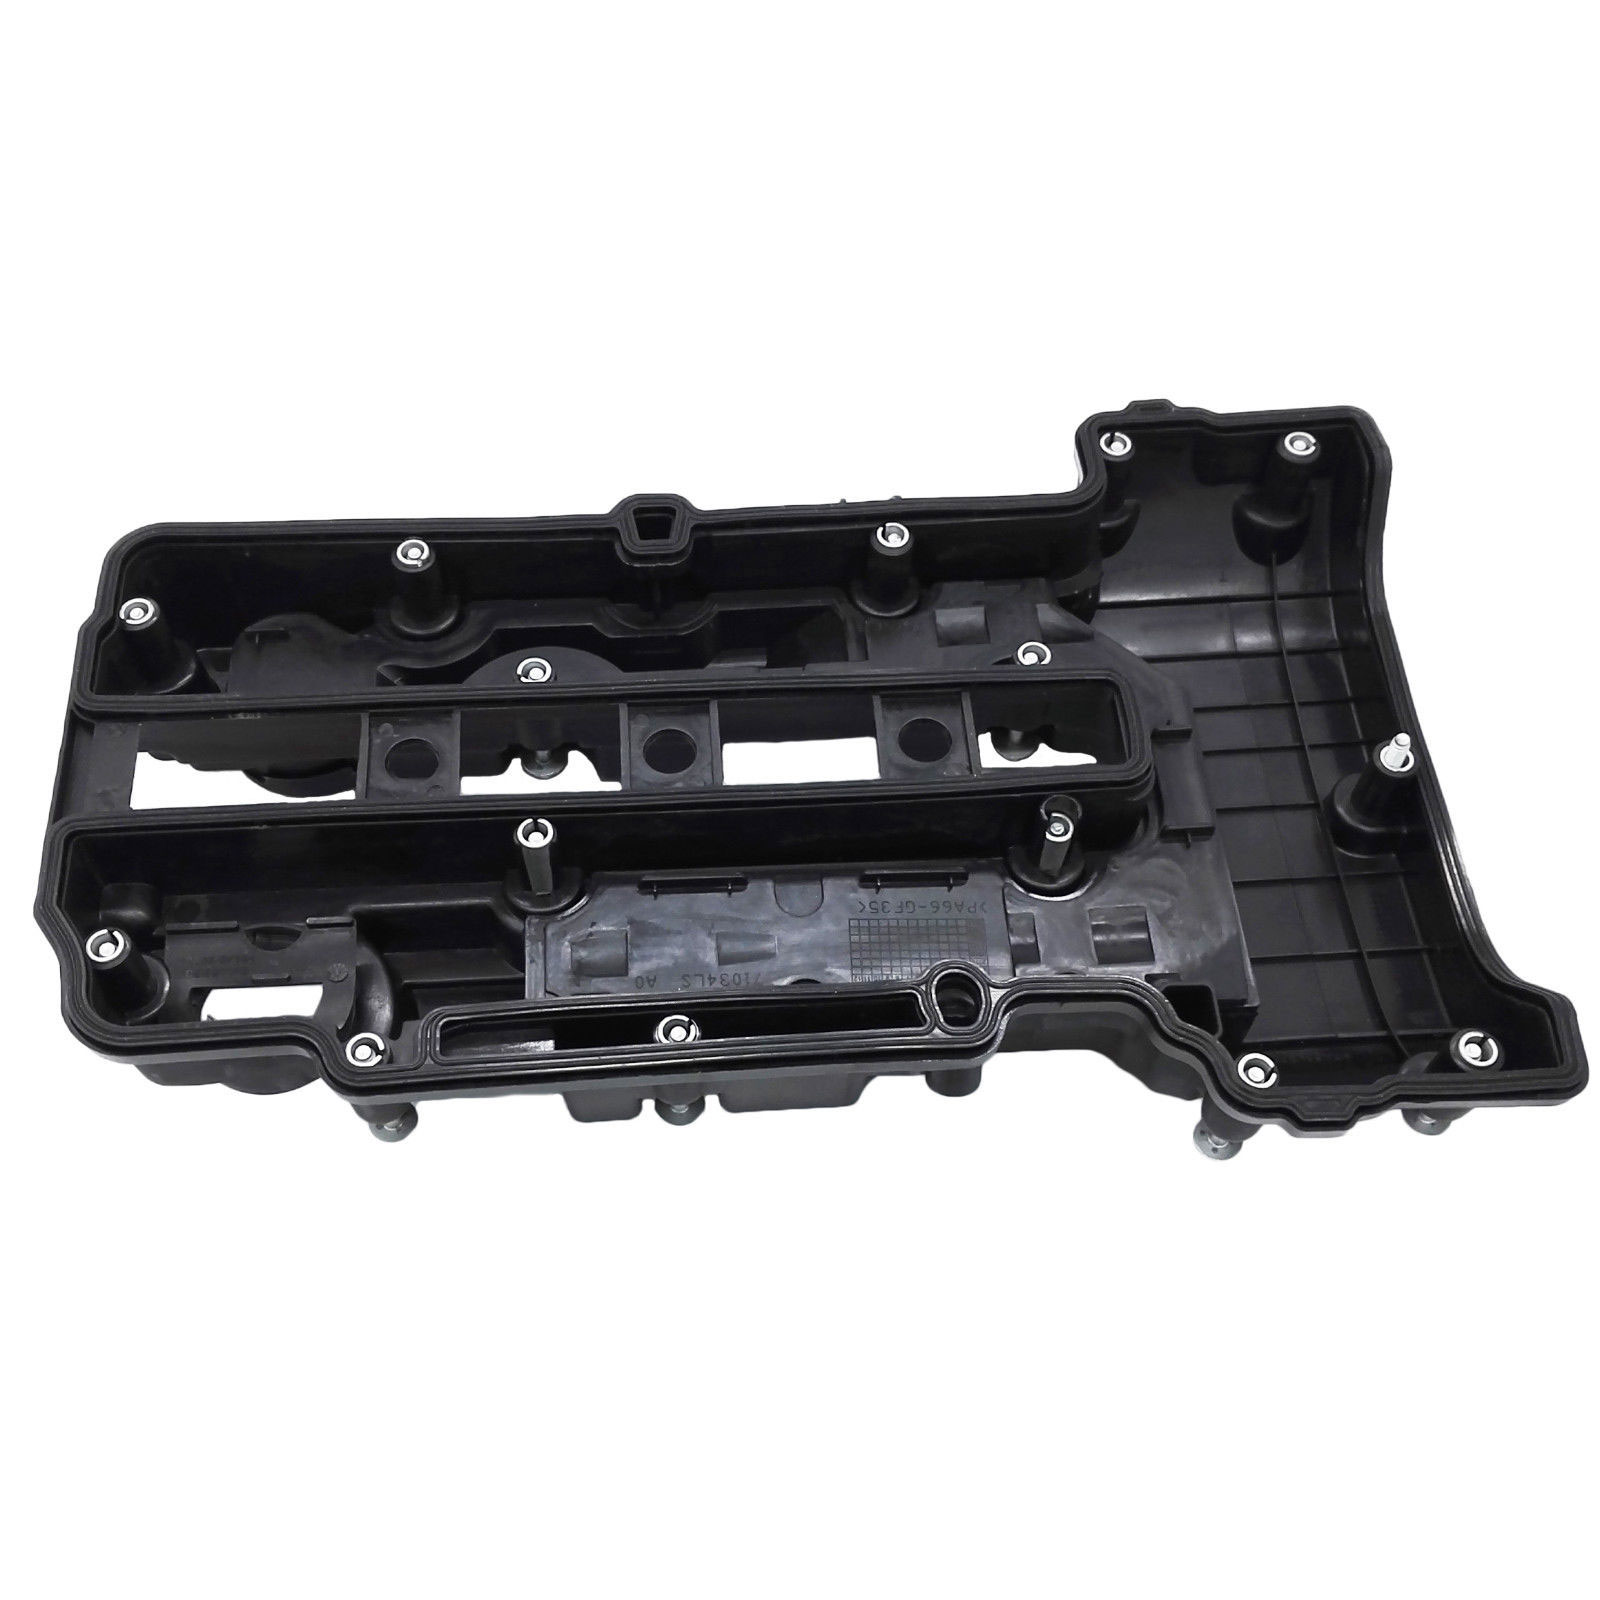 New w// Bolts /& Seal  Camshaft Valve Cover for Chevy Cruze Sonic Volt Trax 1.4L